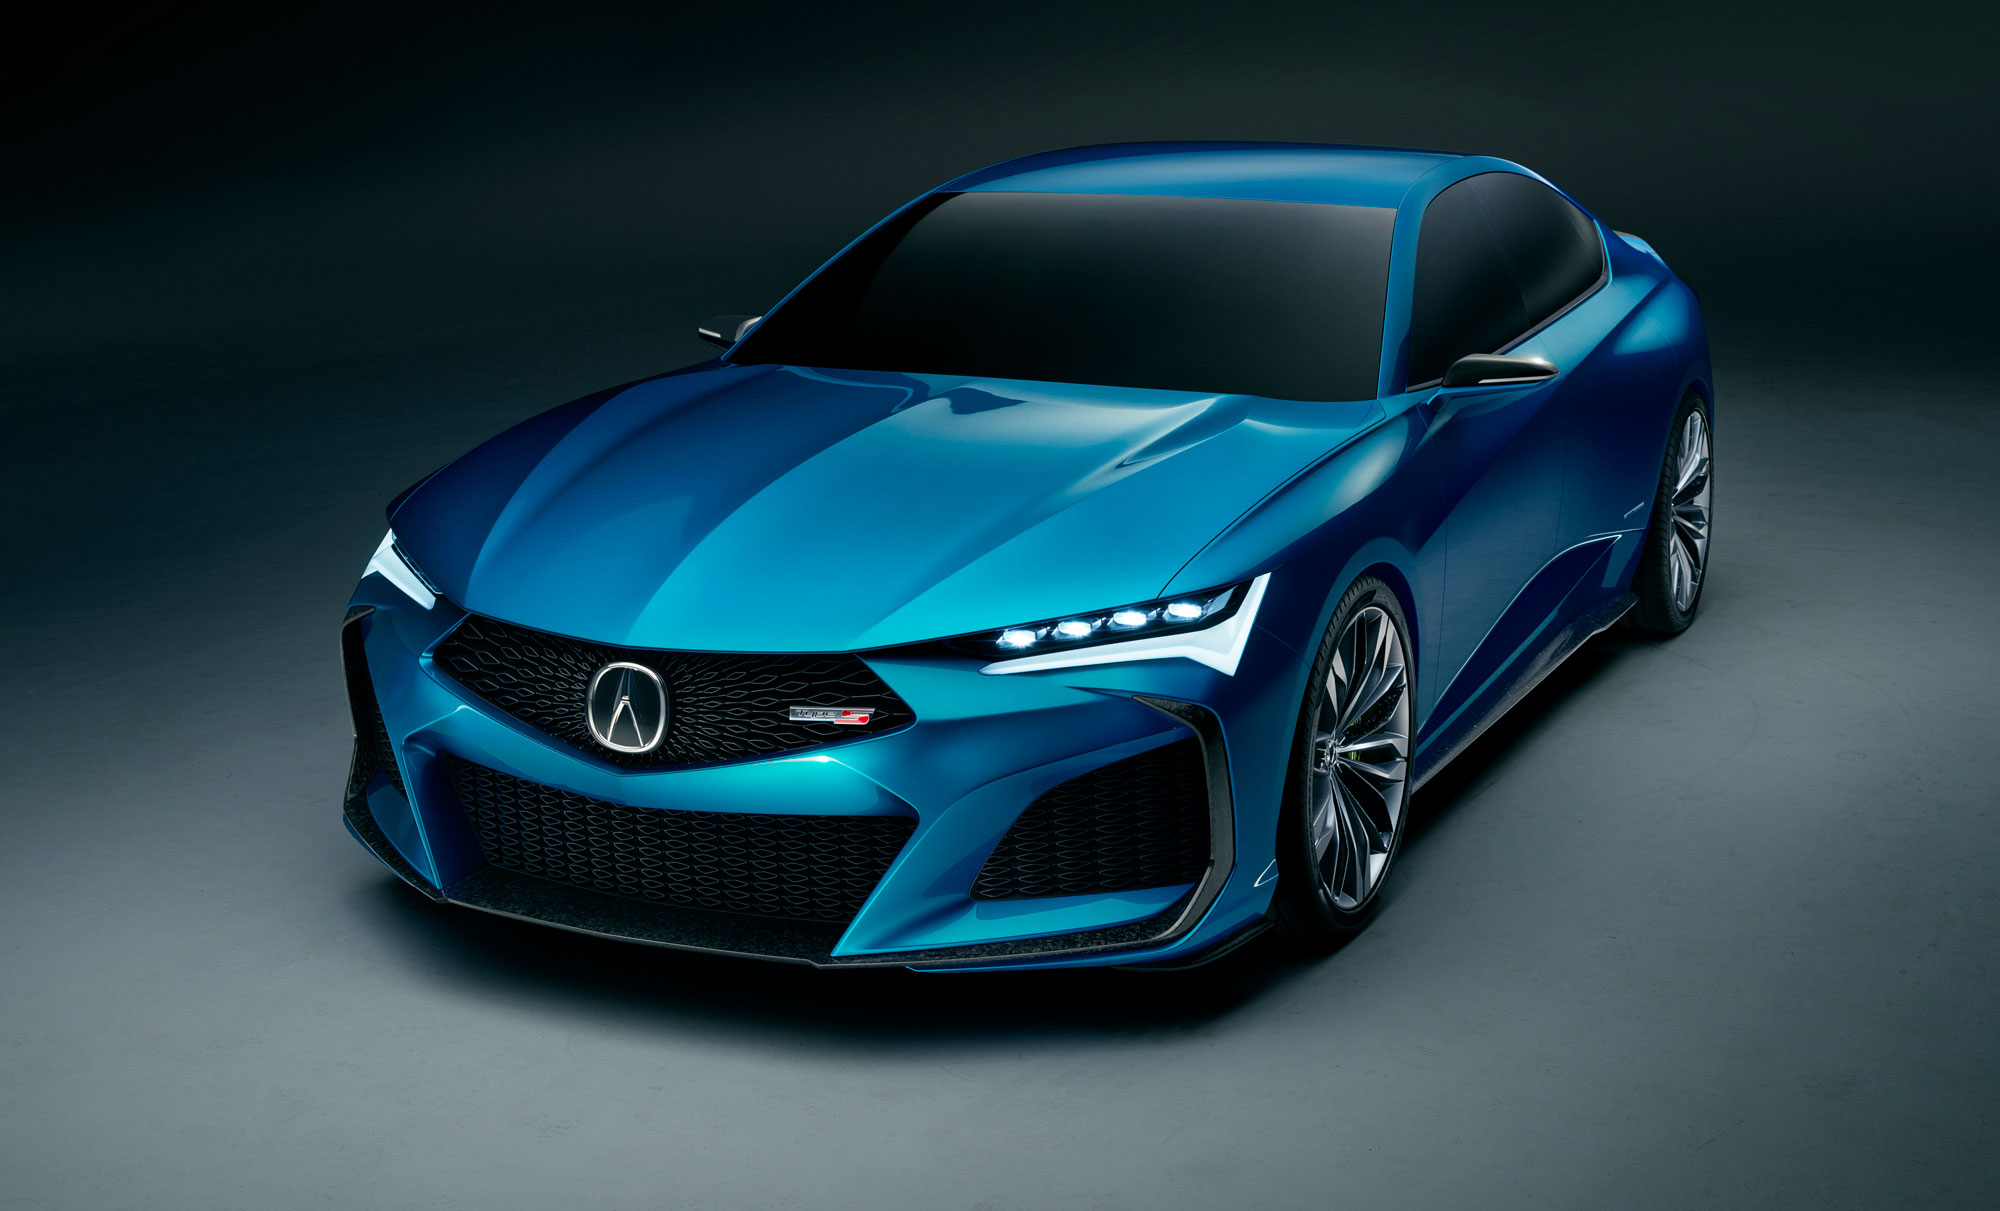 New Type S Concept is the best-looking Acura in years thumbnail